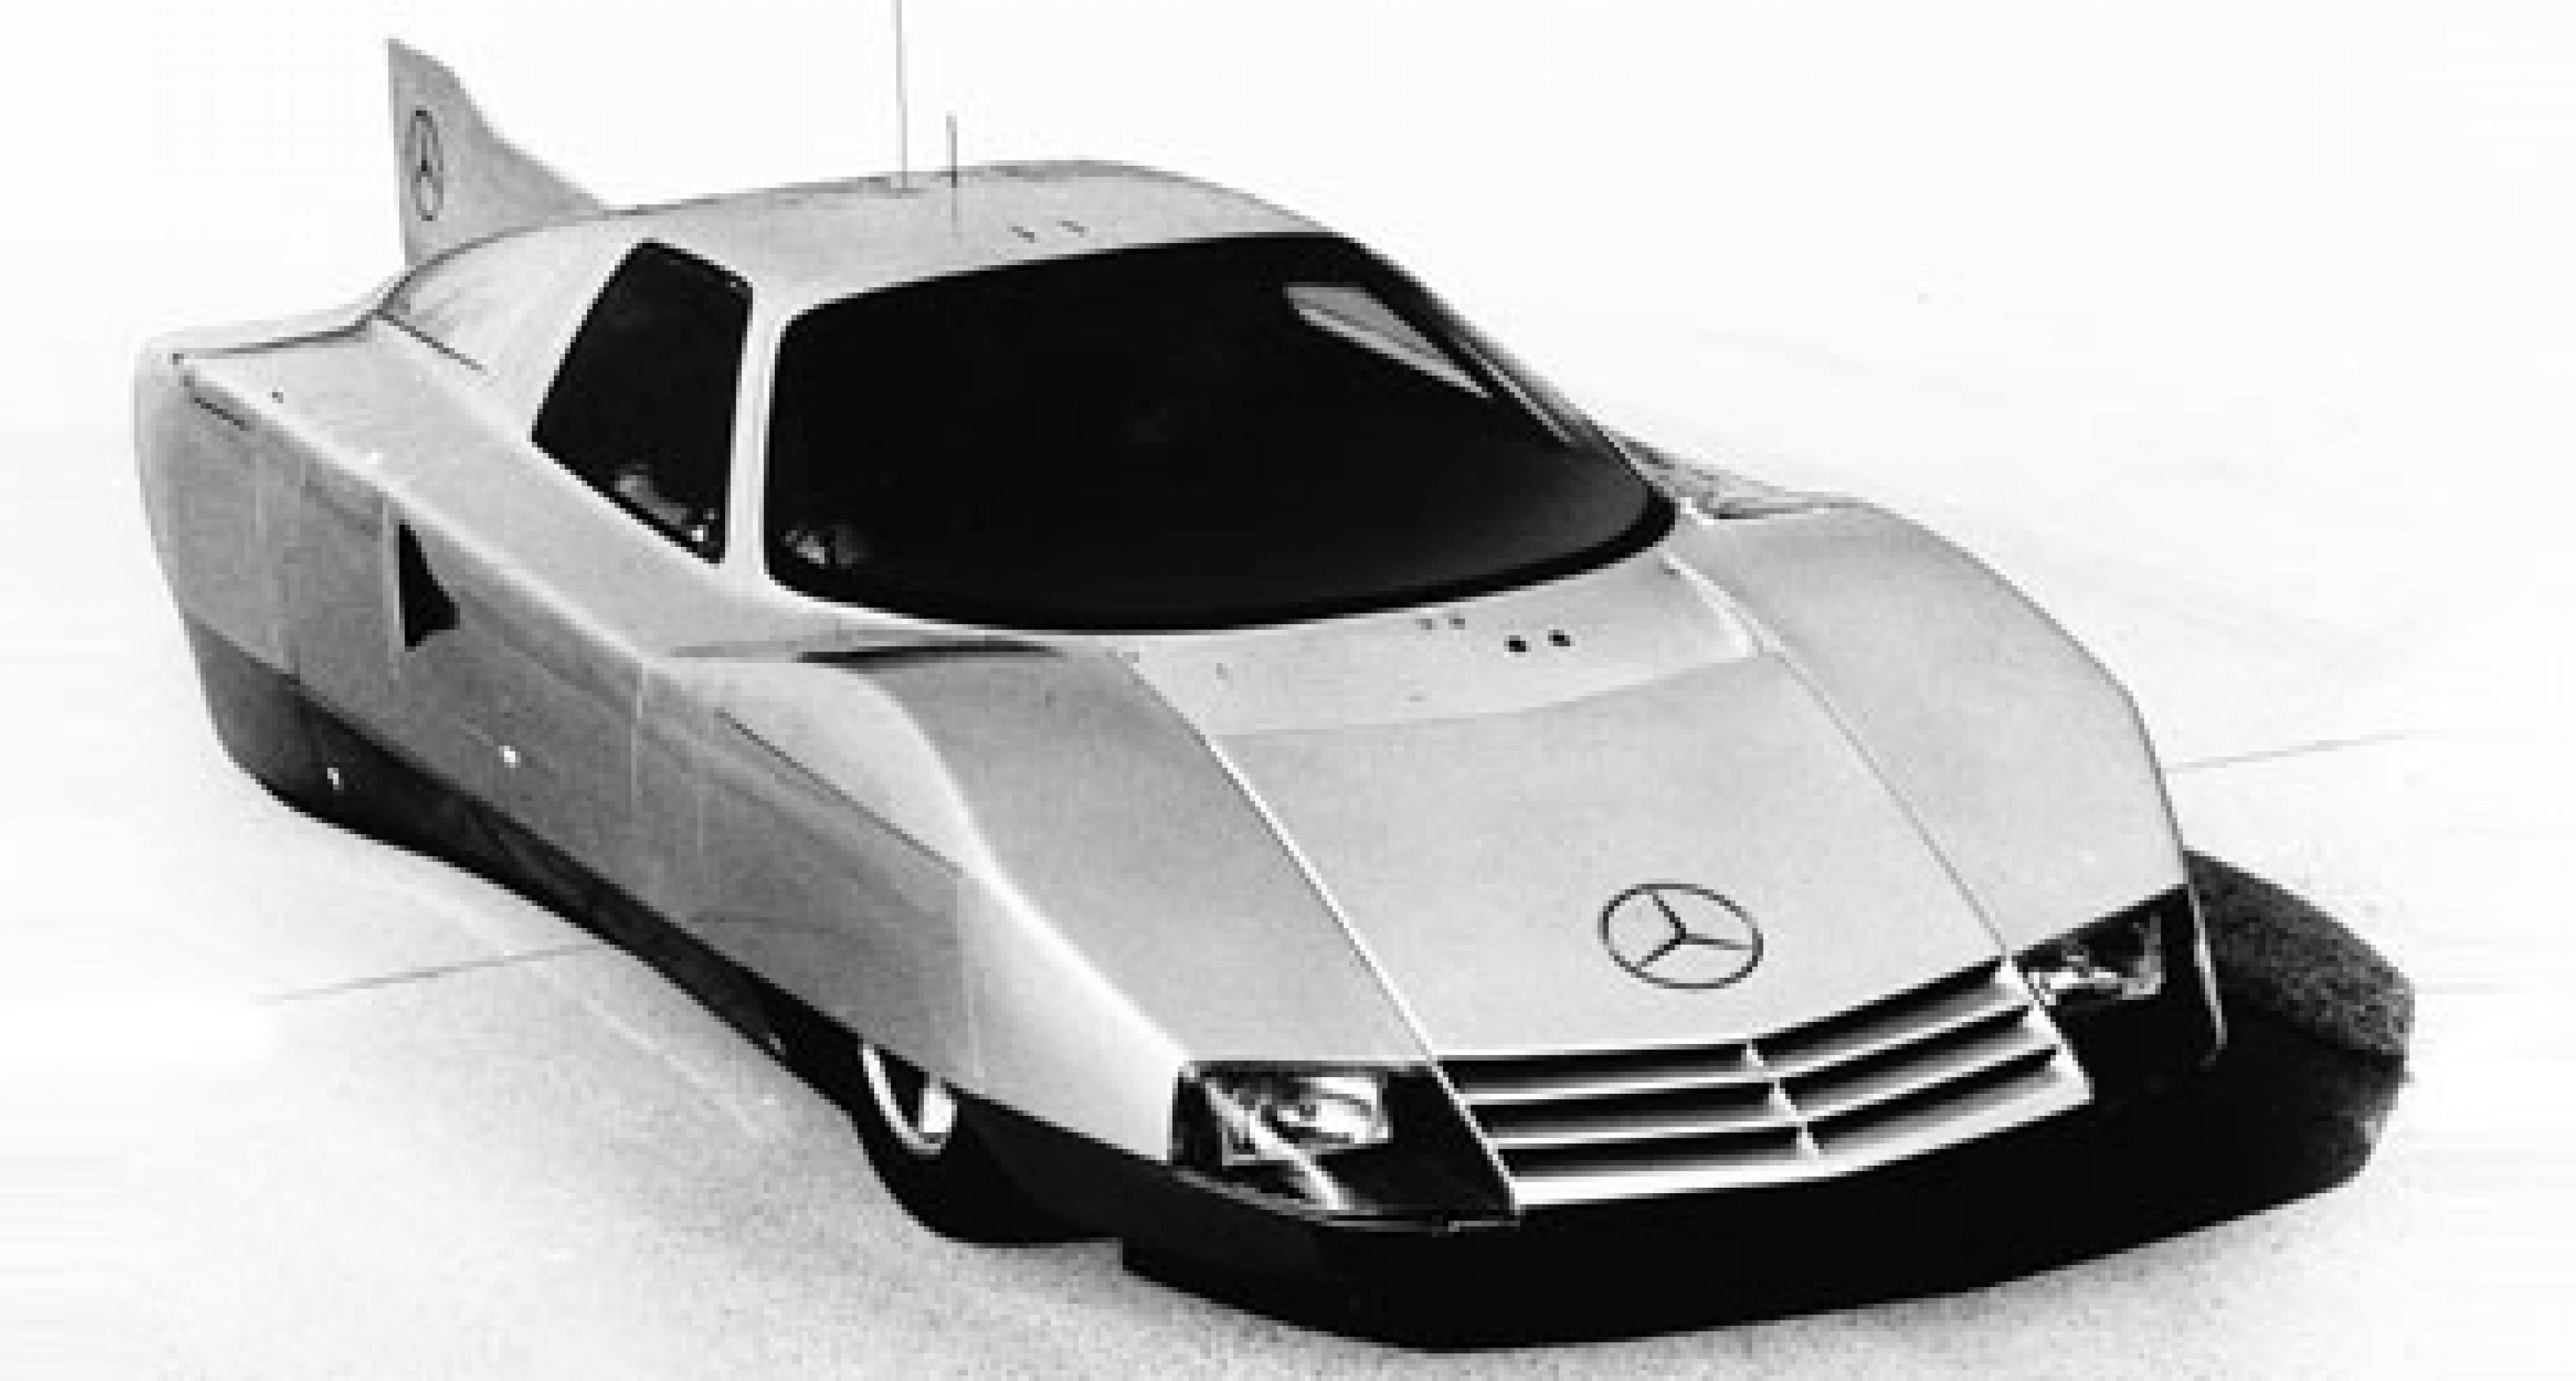 Mercedes C111 Diesel World Record Holder - 25 years on